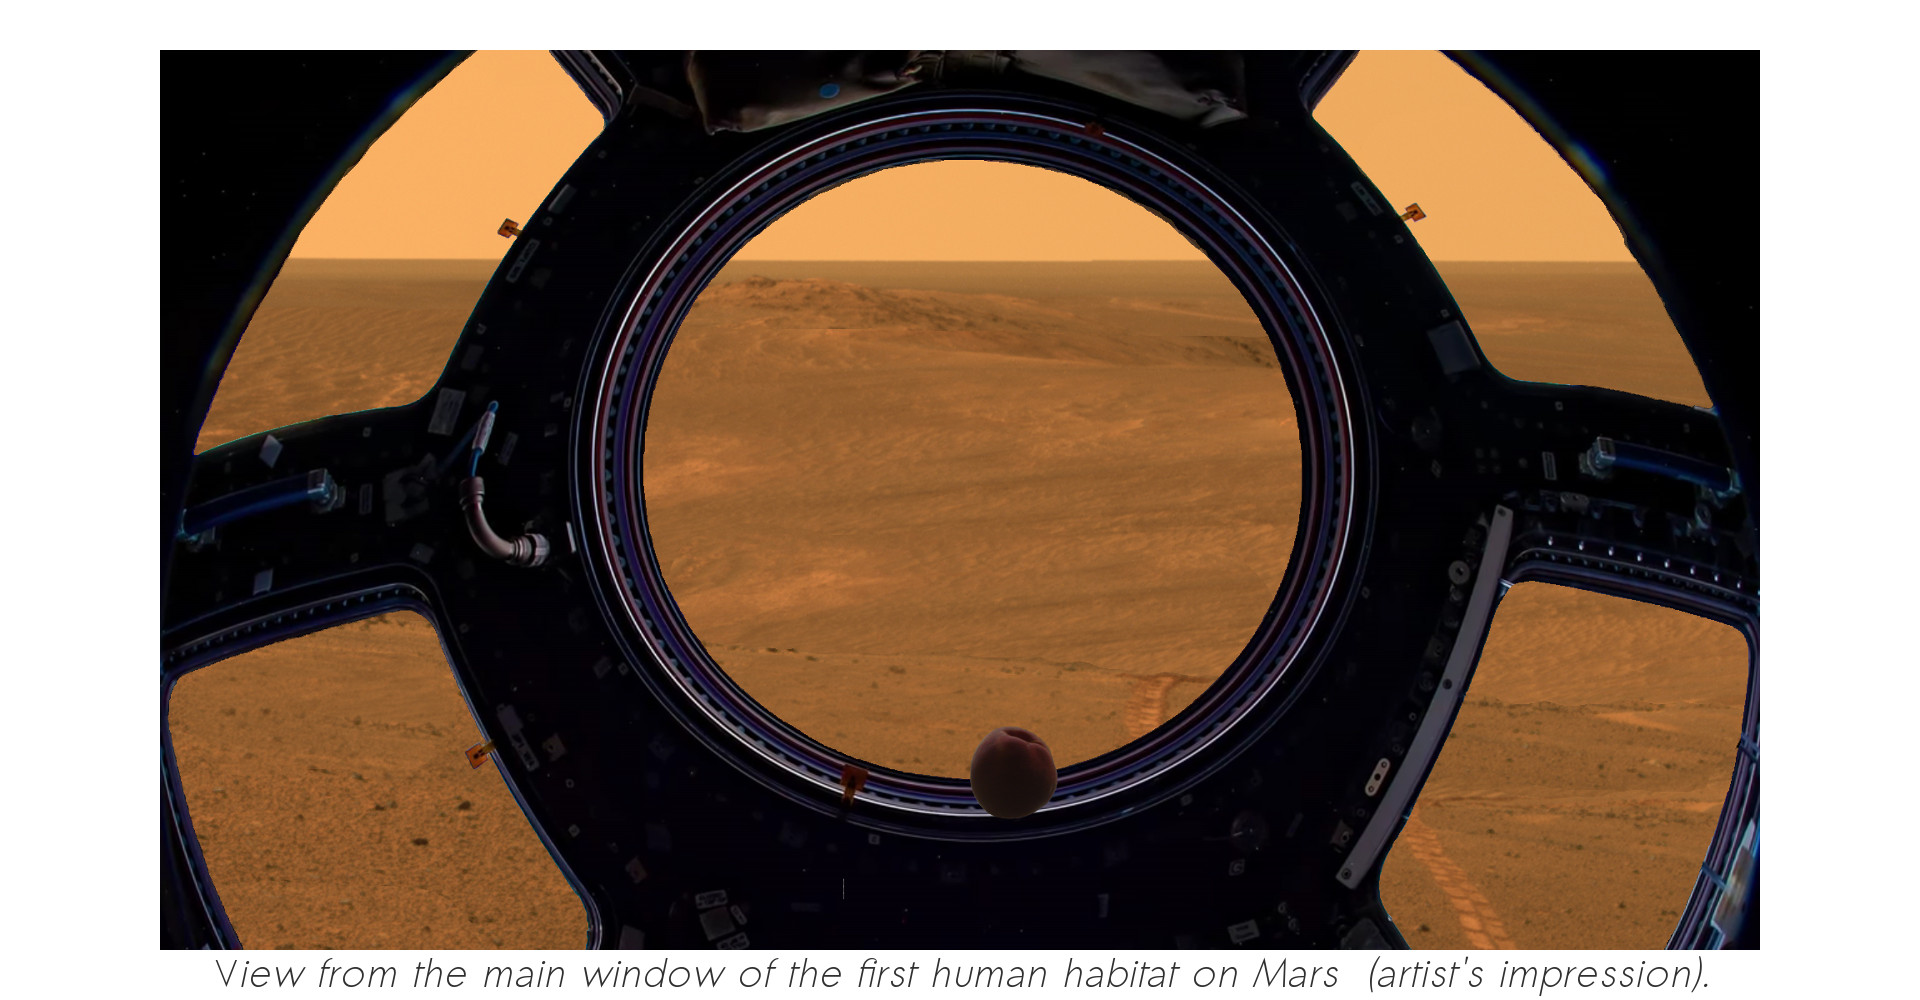 View from of the main window of the first human habitat on Mars (artist's impression).